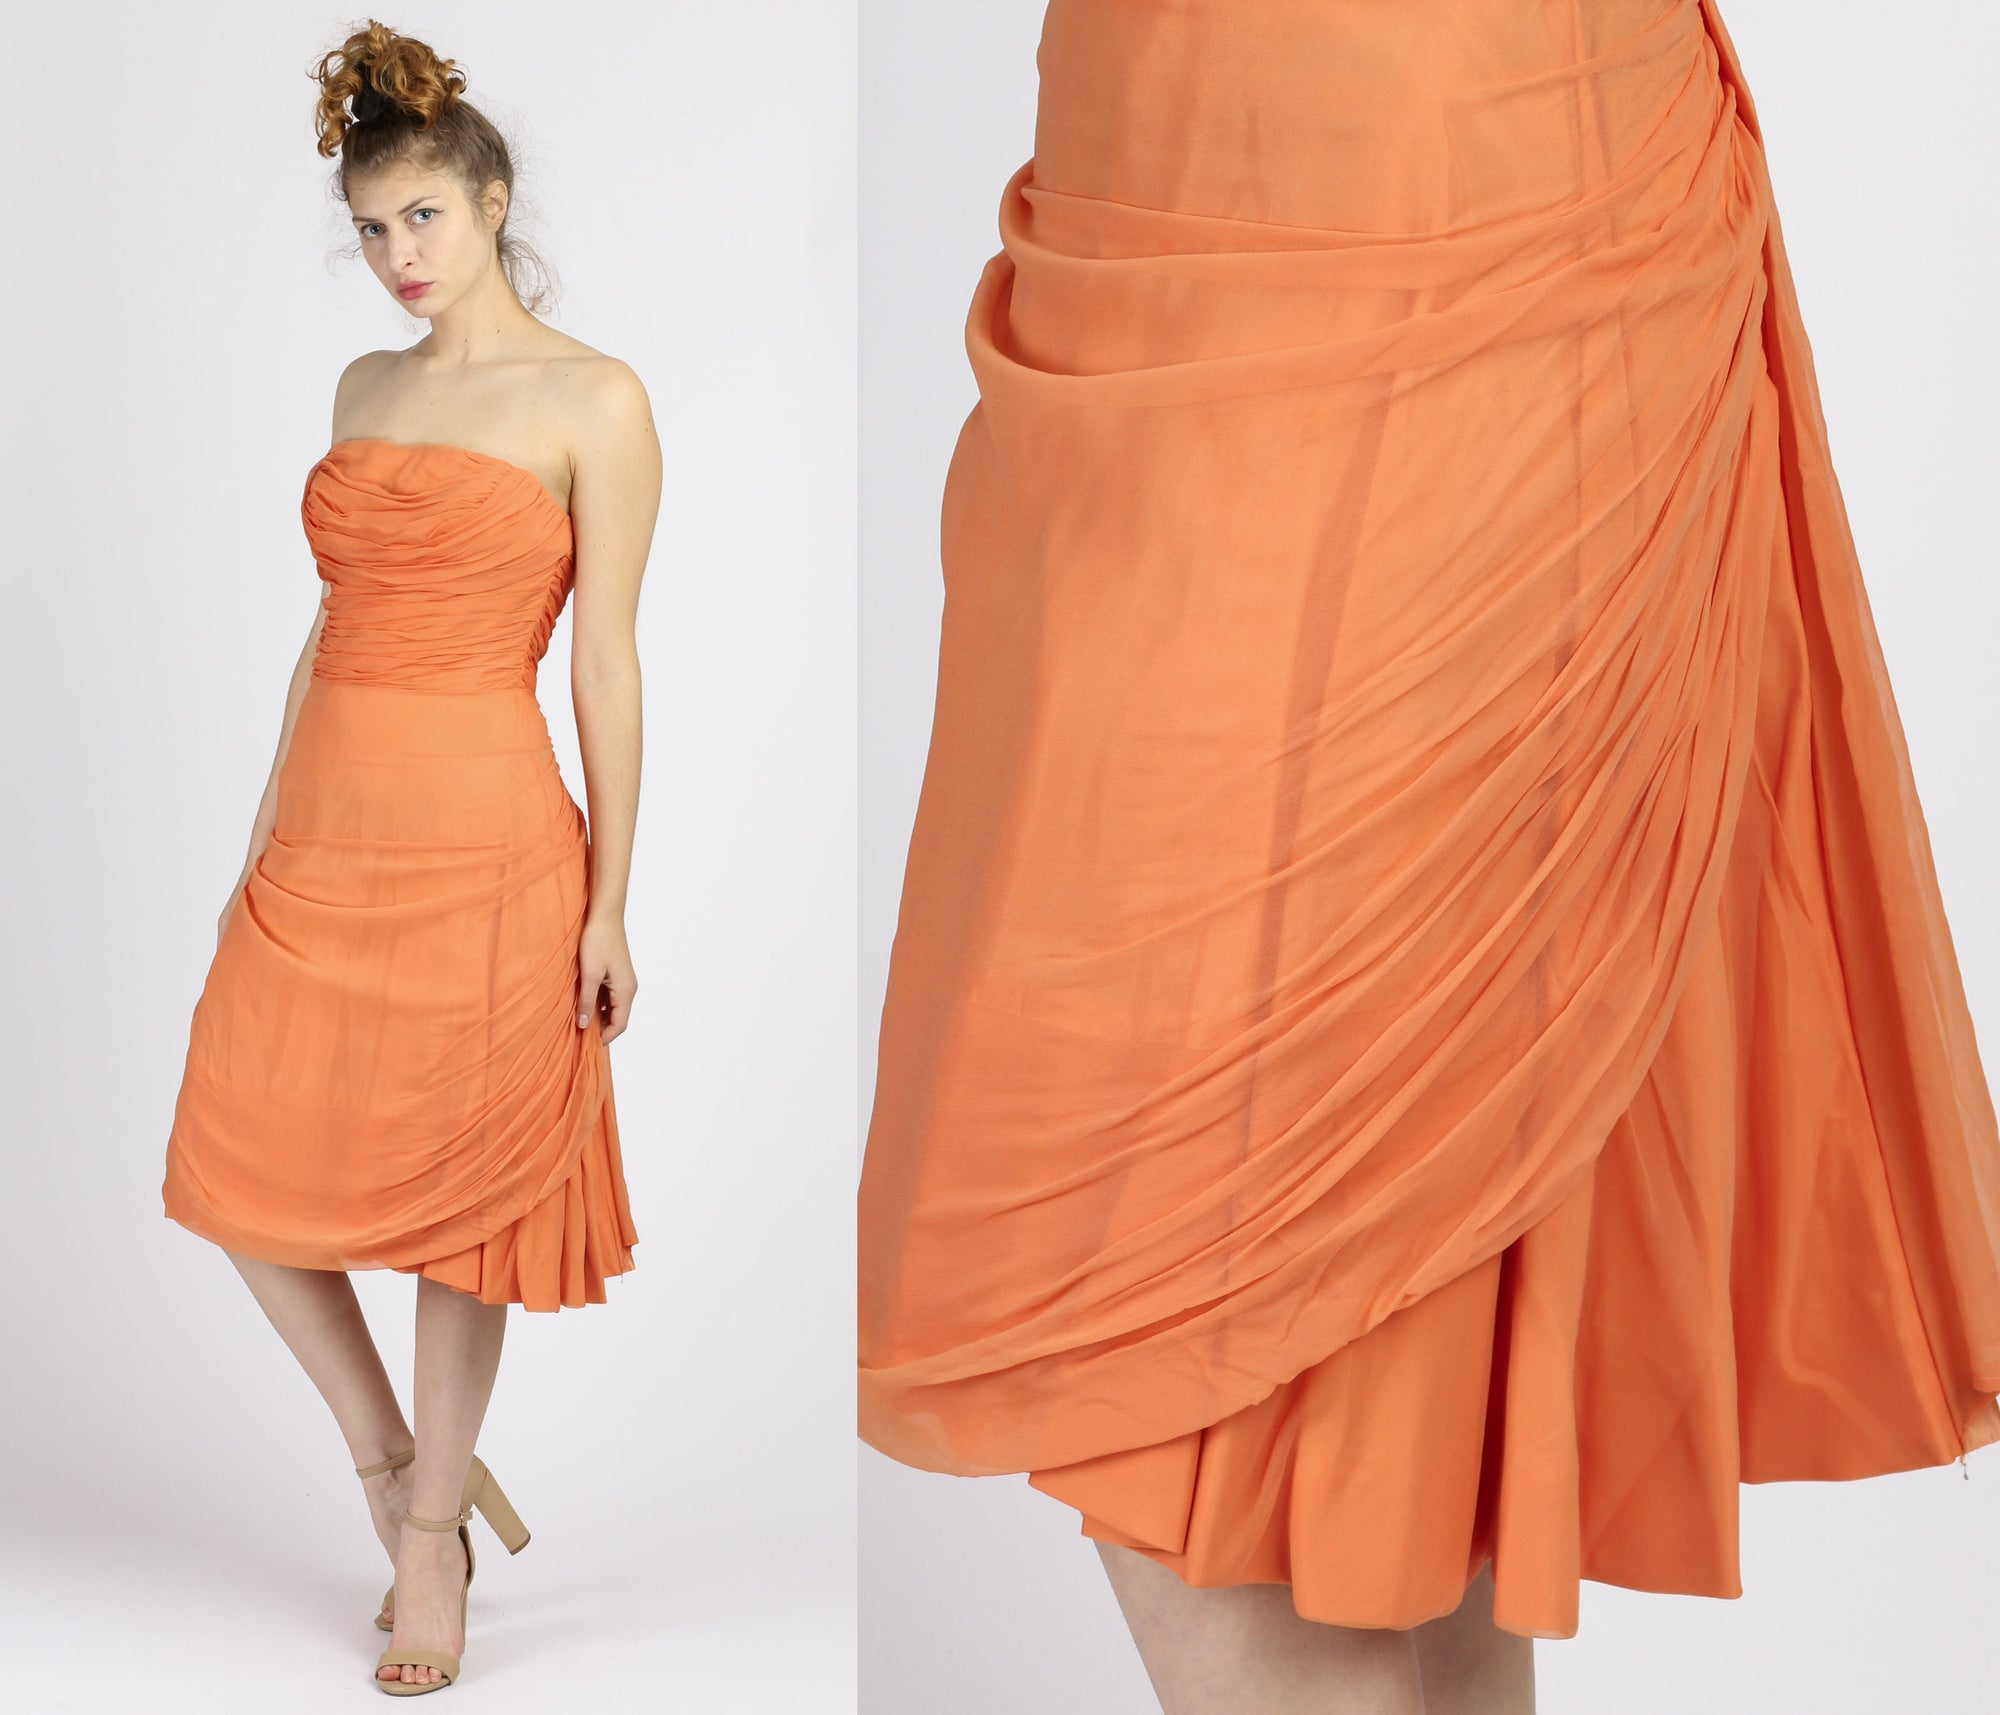 1950s Emma Domb Orange Strapless Party Dress - Small to Medium